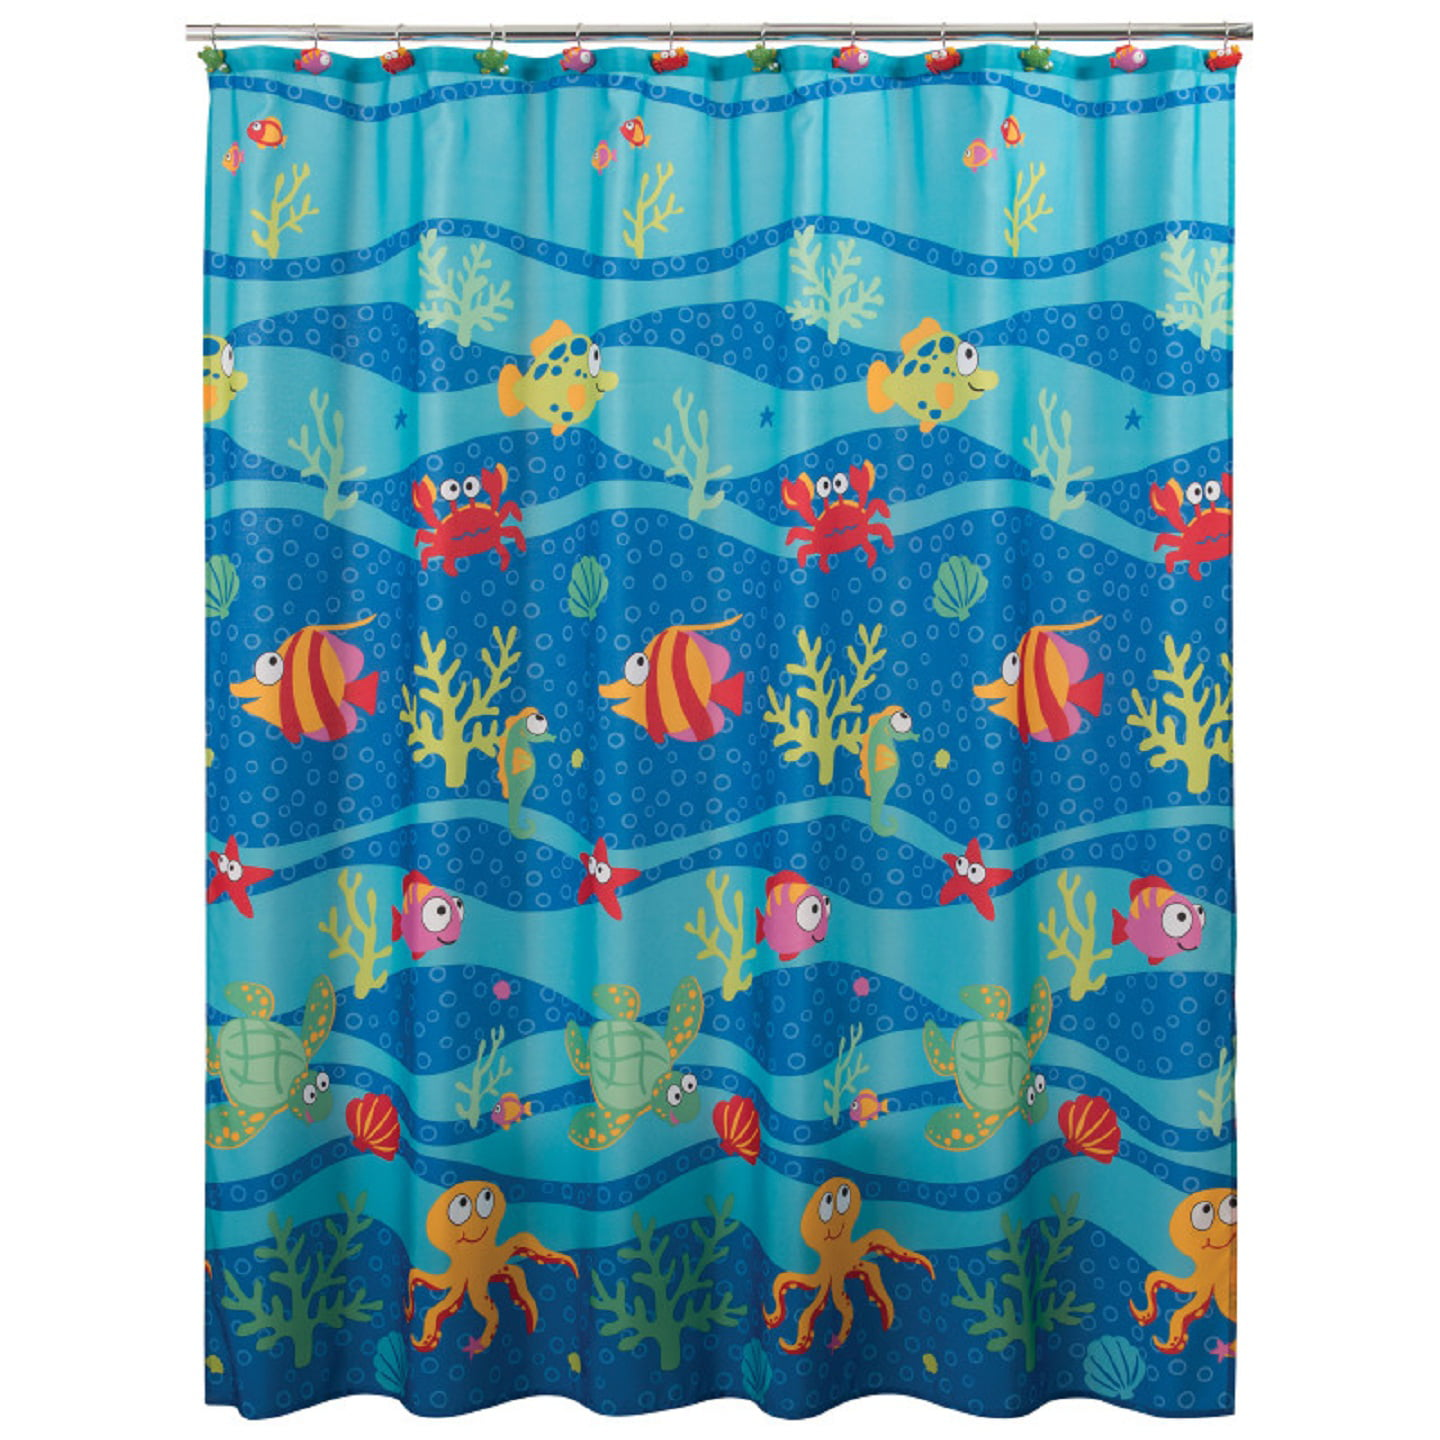 Fish Tails Polyester Printed Fabric Shower Curtain By Allure Home Creation 70 X 72 Walmart Com Walmart Com